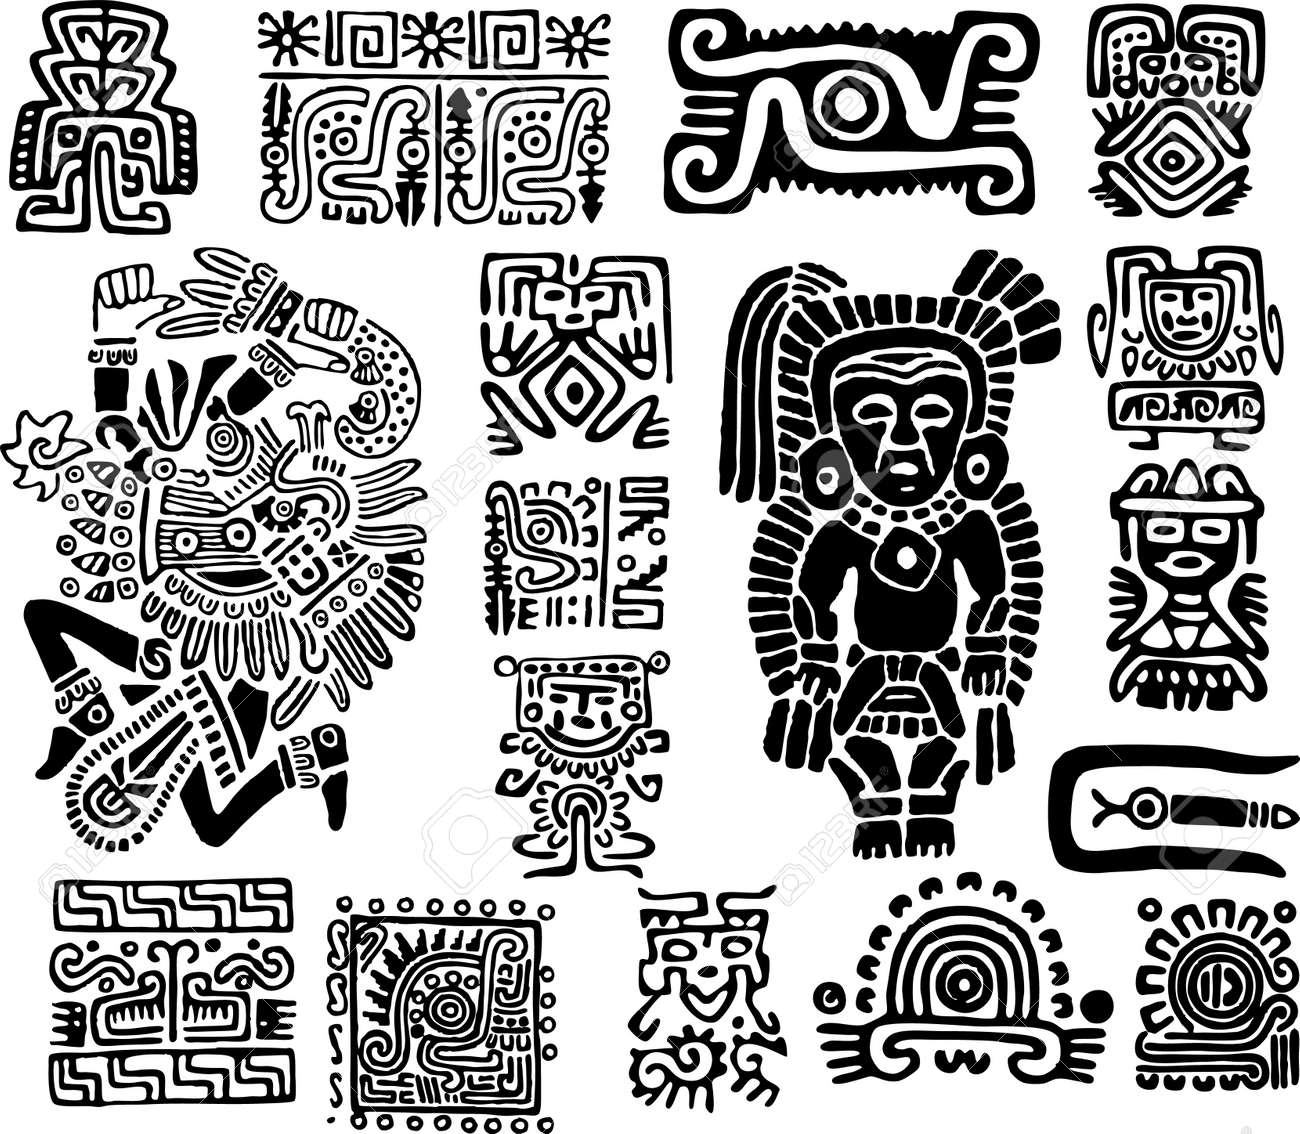 Mexican Symbols And Meanings Lektonfo